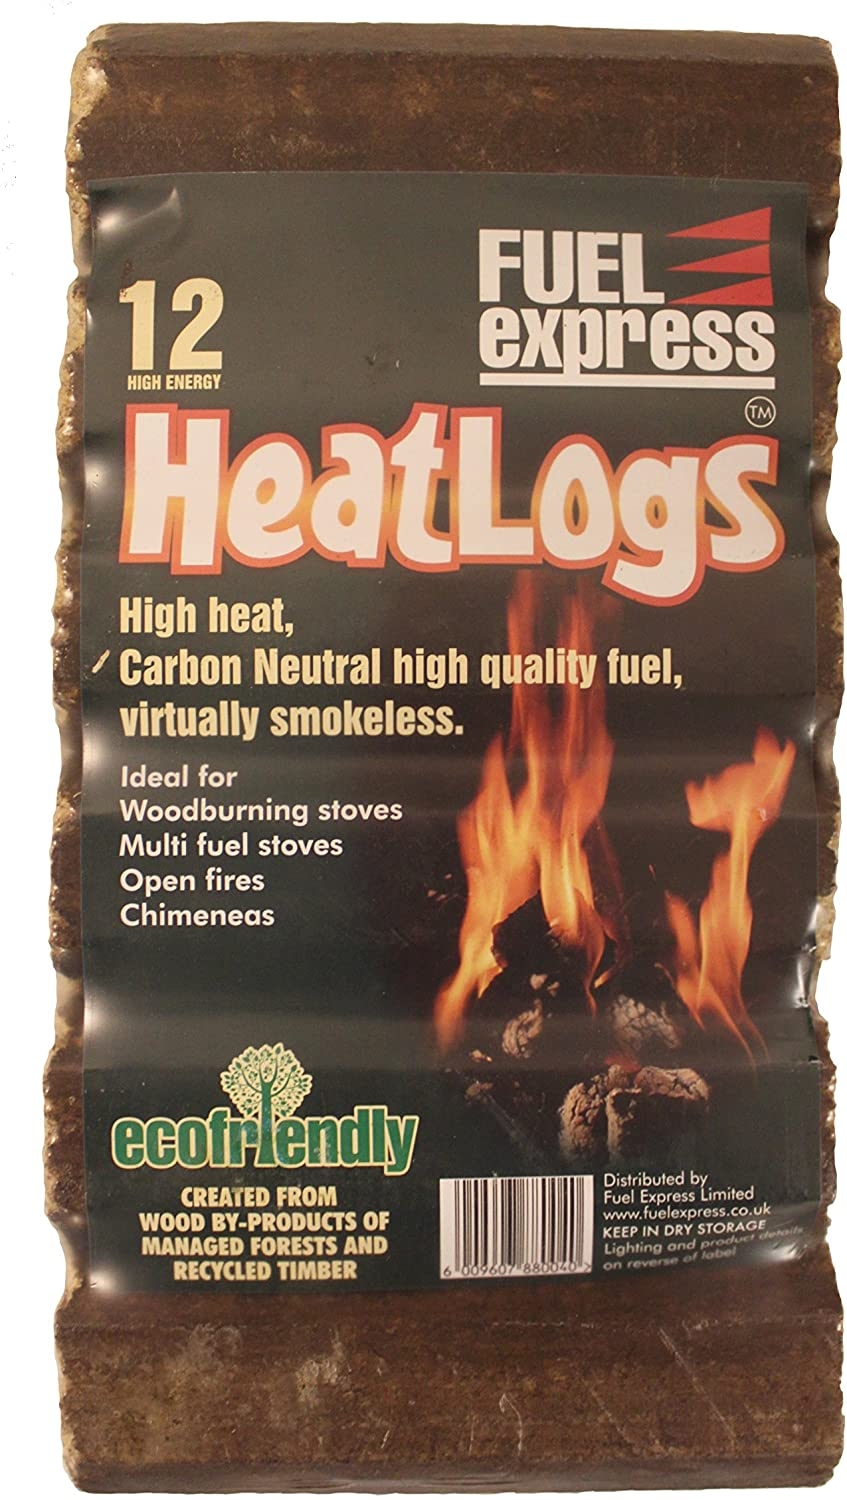 Fuel Express Eco Heatlogs 12 Pack